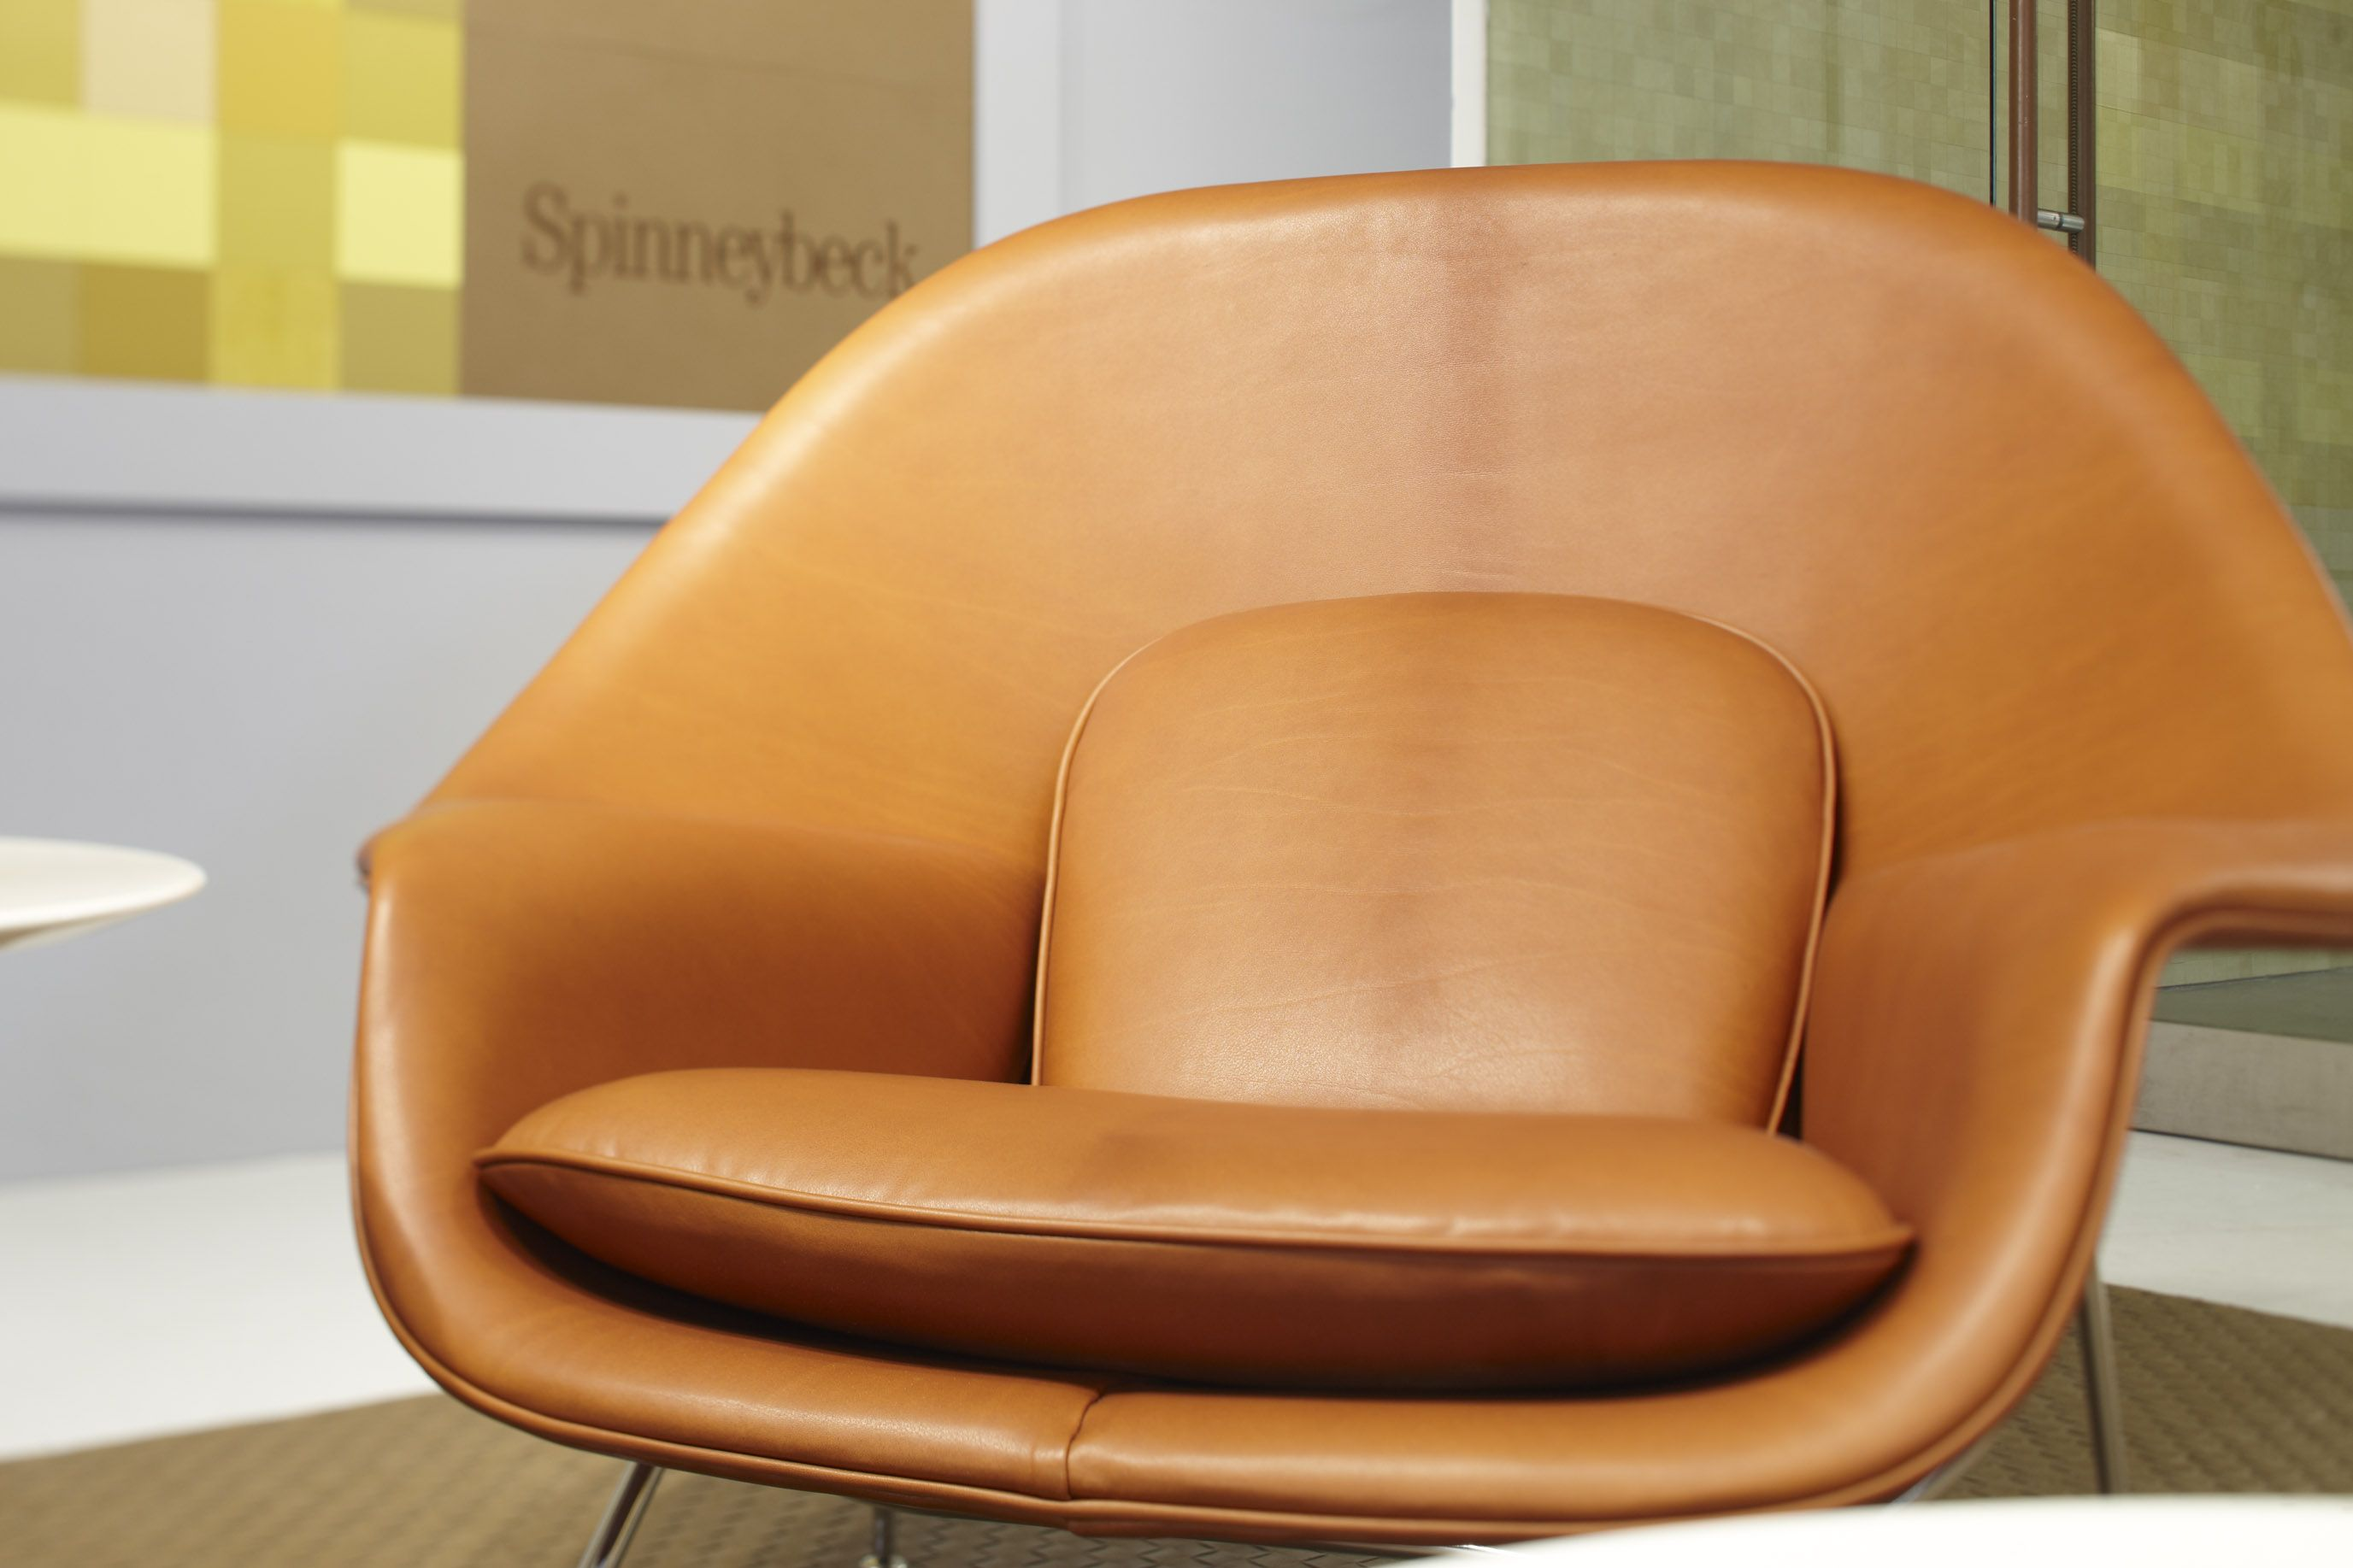 Saarinen Womb Chair  Knoll  Knoll for Home  Womb chair